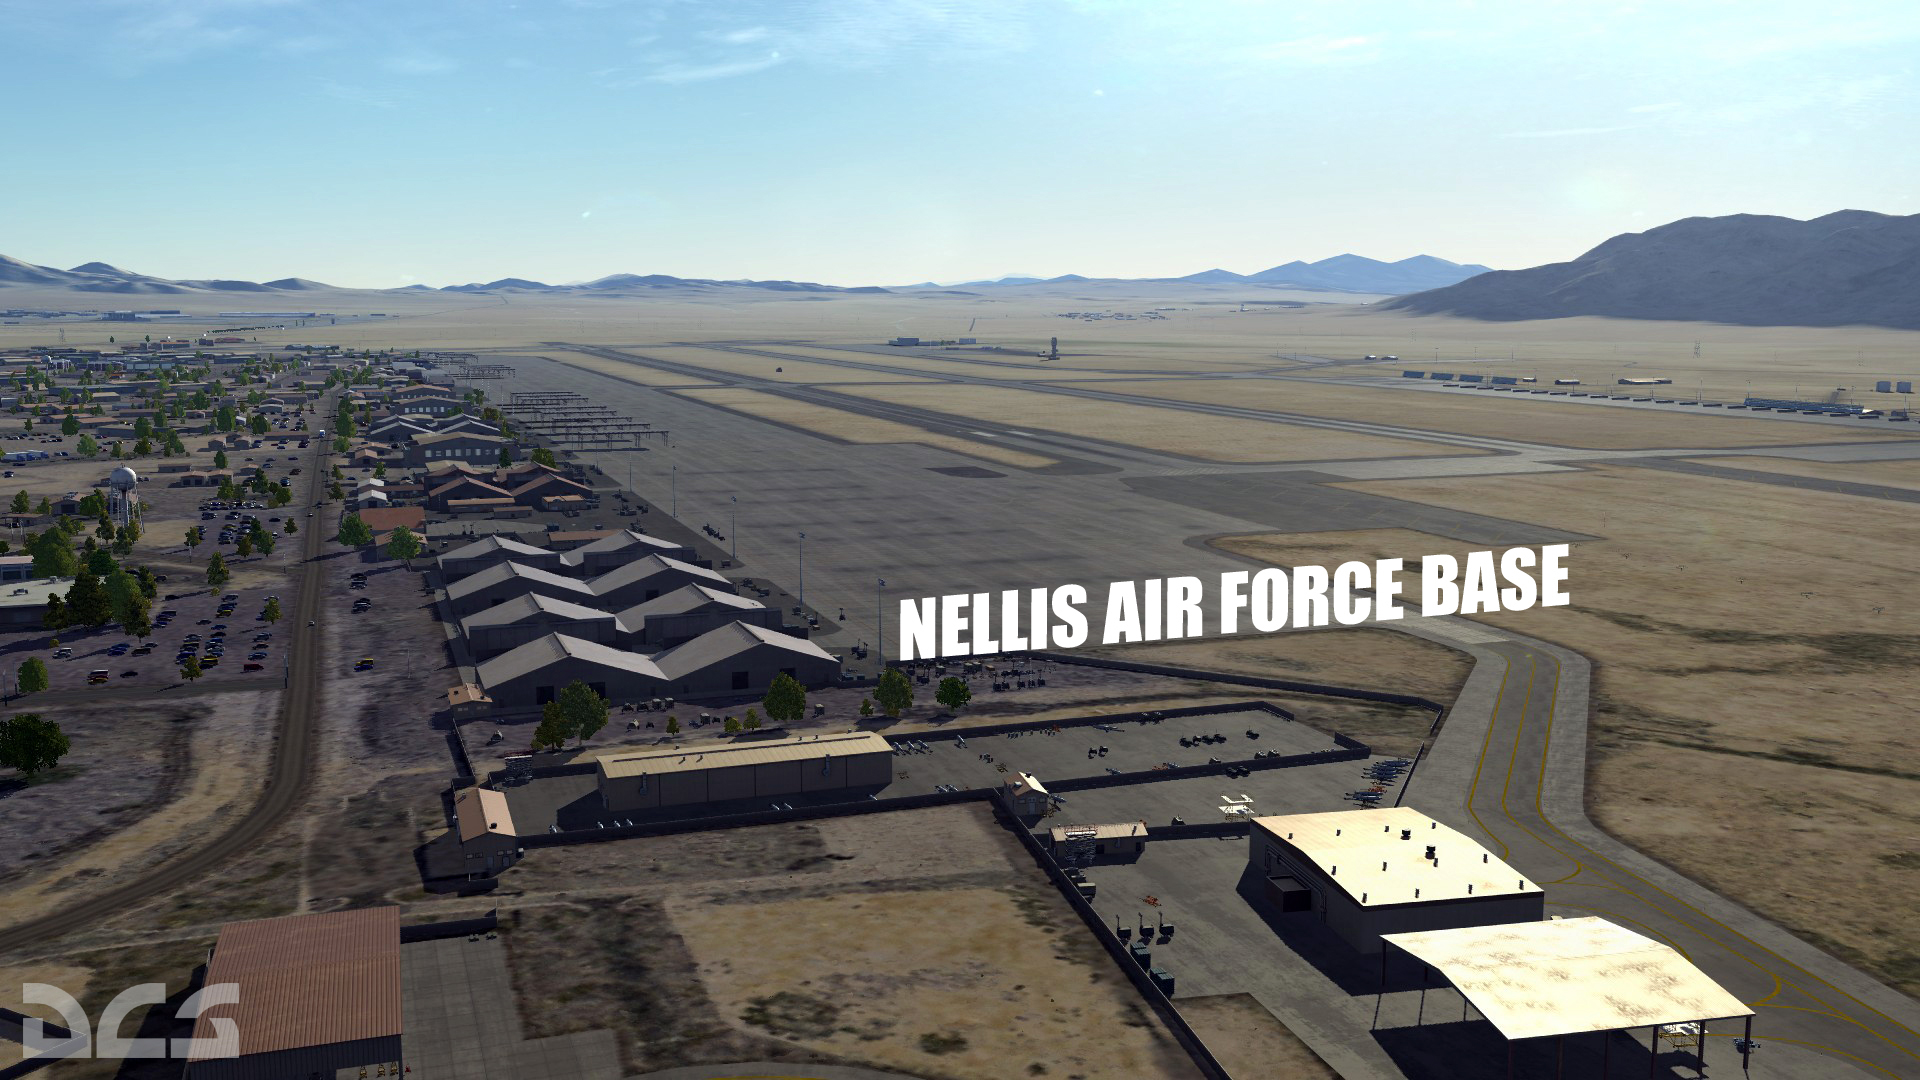 Dcs nevada test and training range map gumiabroncs Image collections